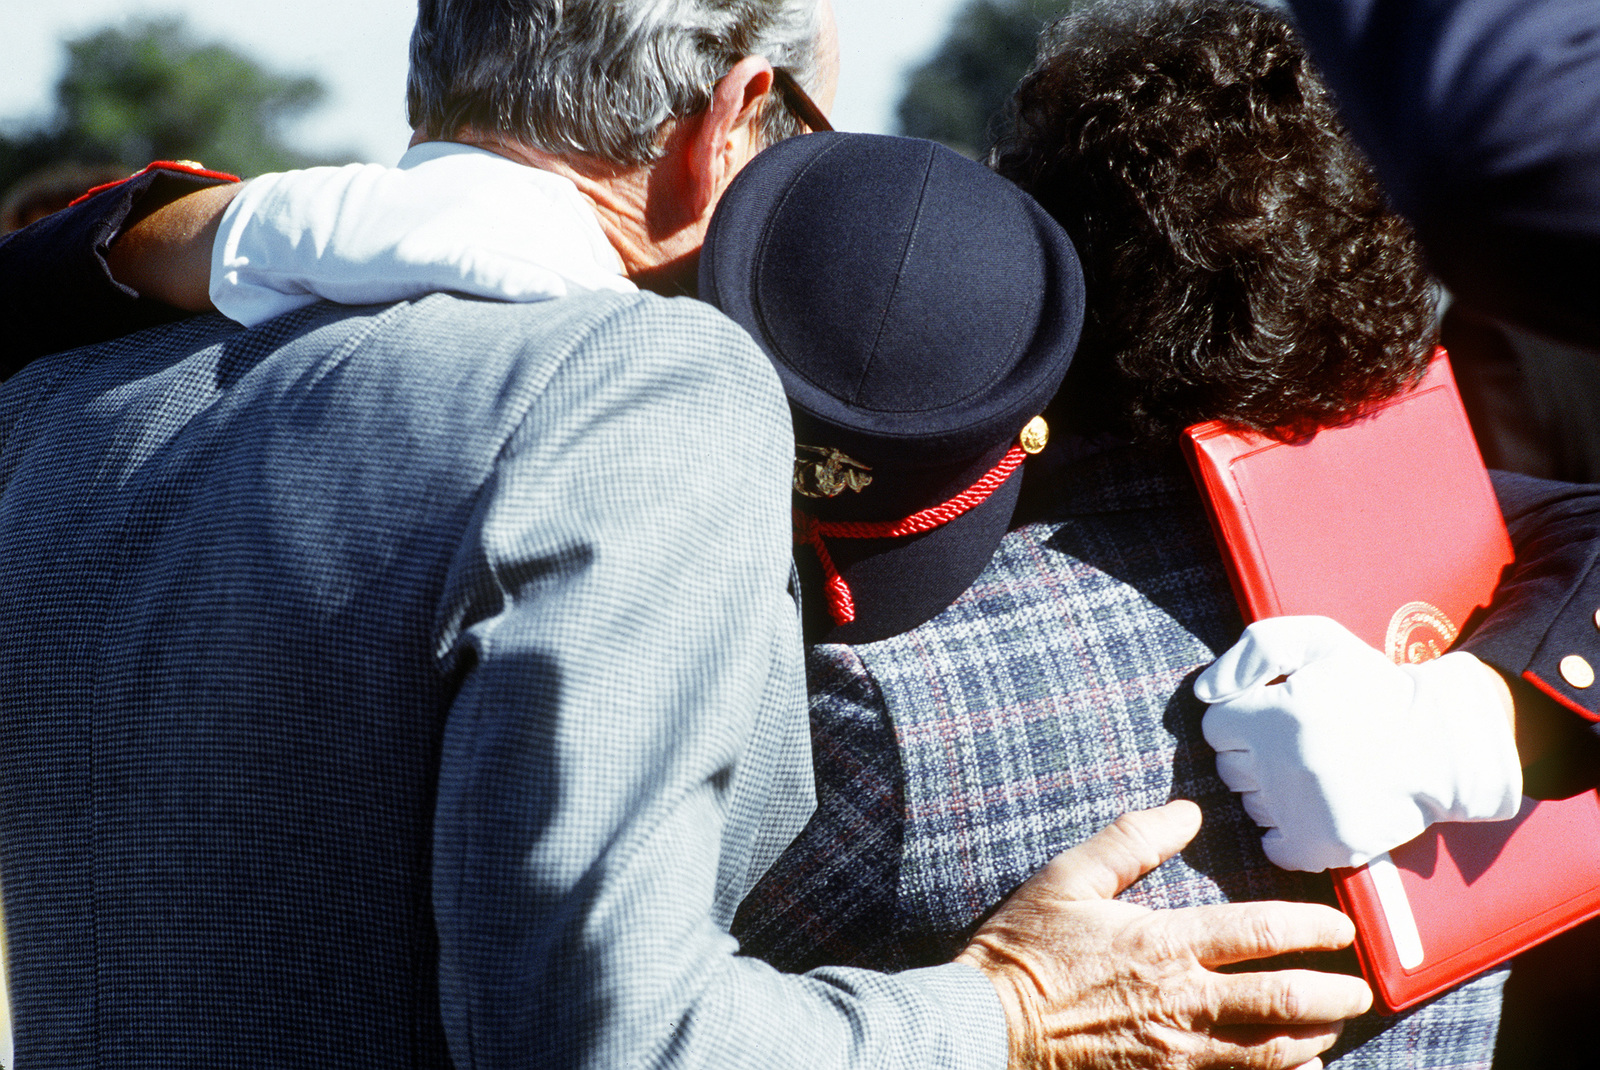 A recruit from the Woman Recruit Training Command embraces loved ones upon graduating from basic training